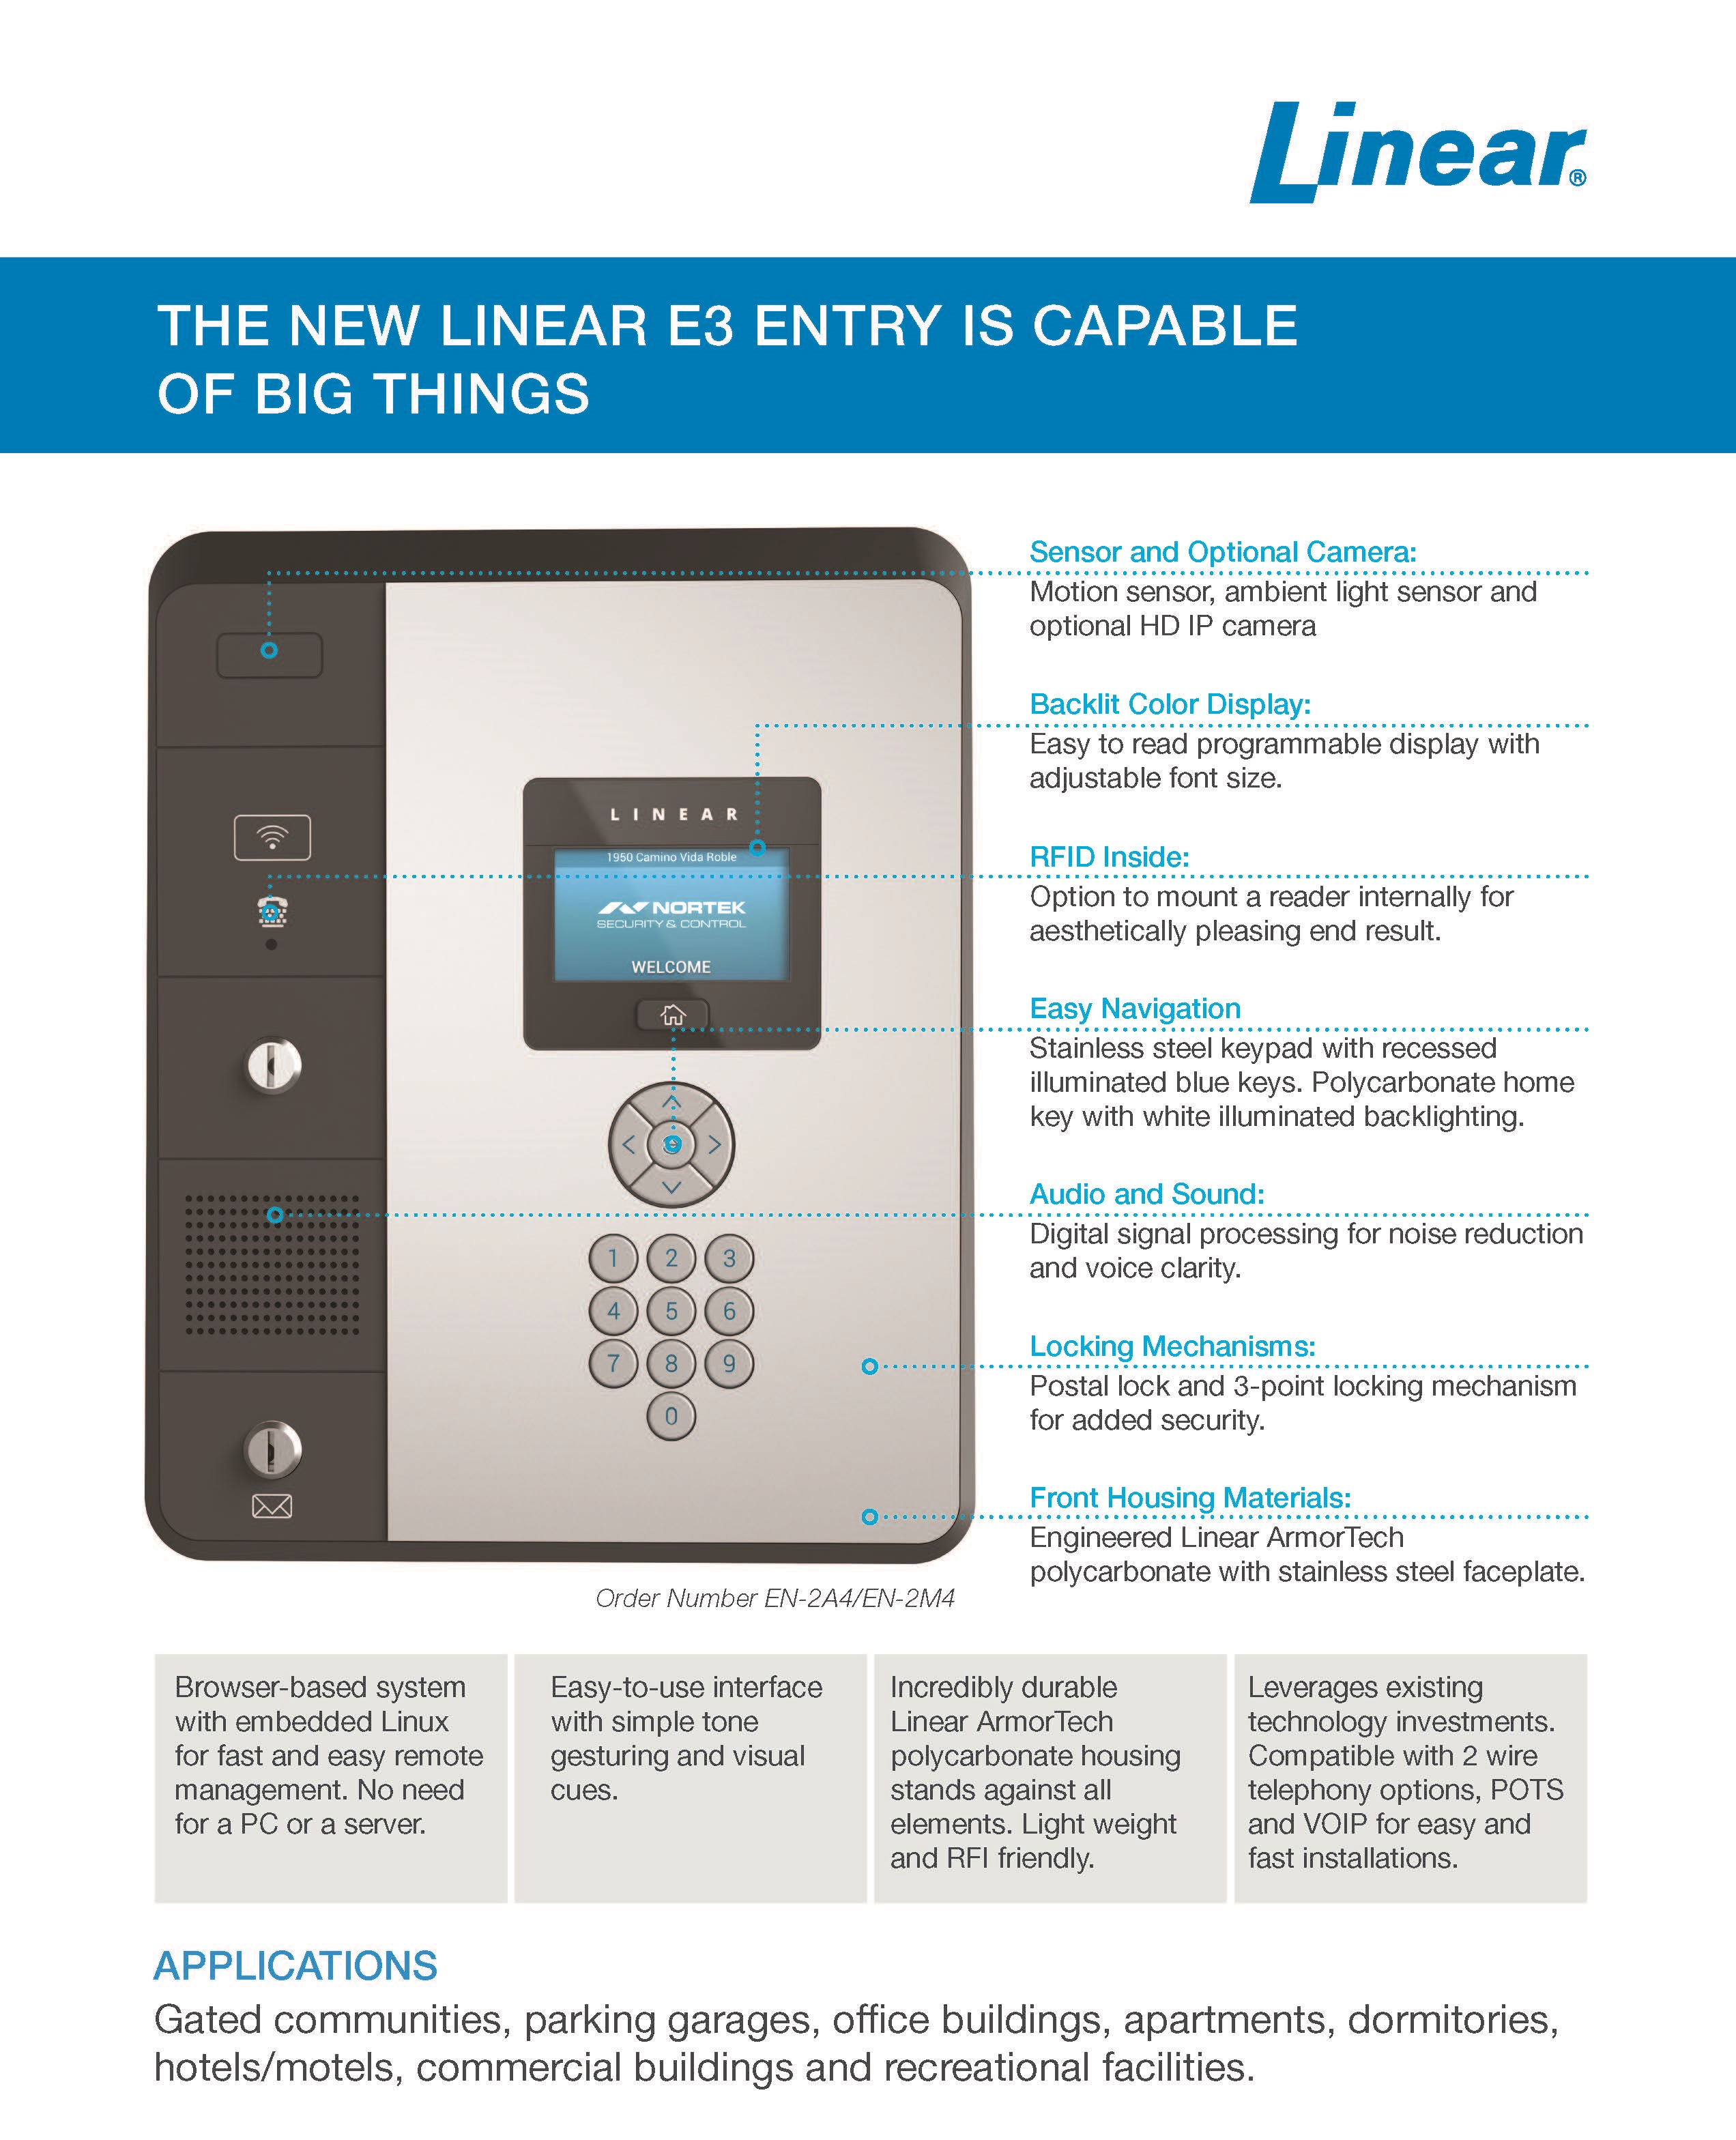 Linear EN-2M4 Commercial Telephone Entry System 720-100136